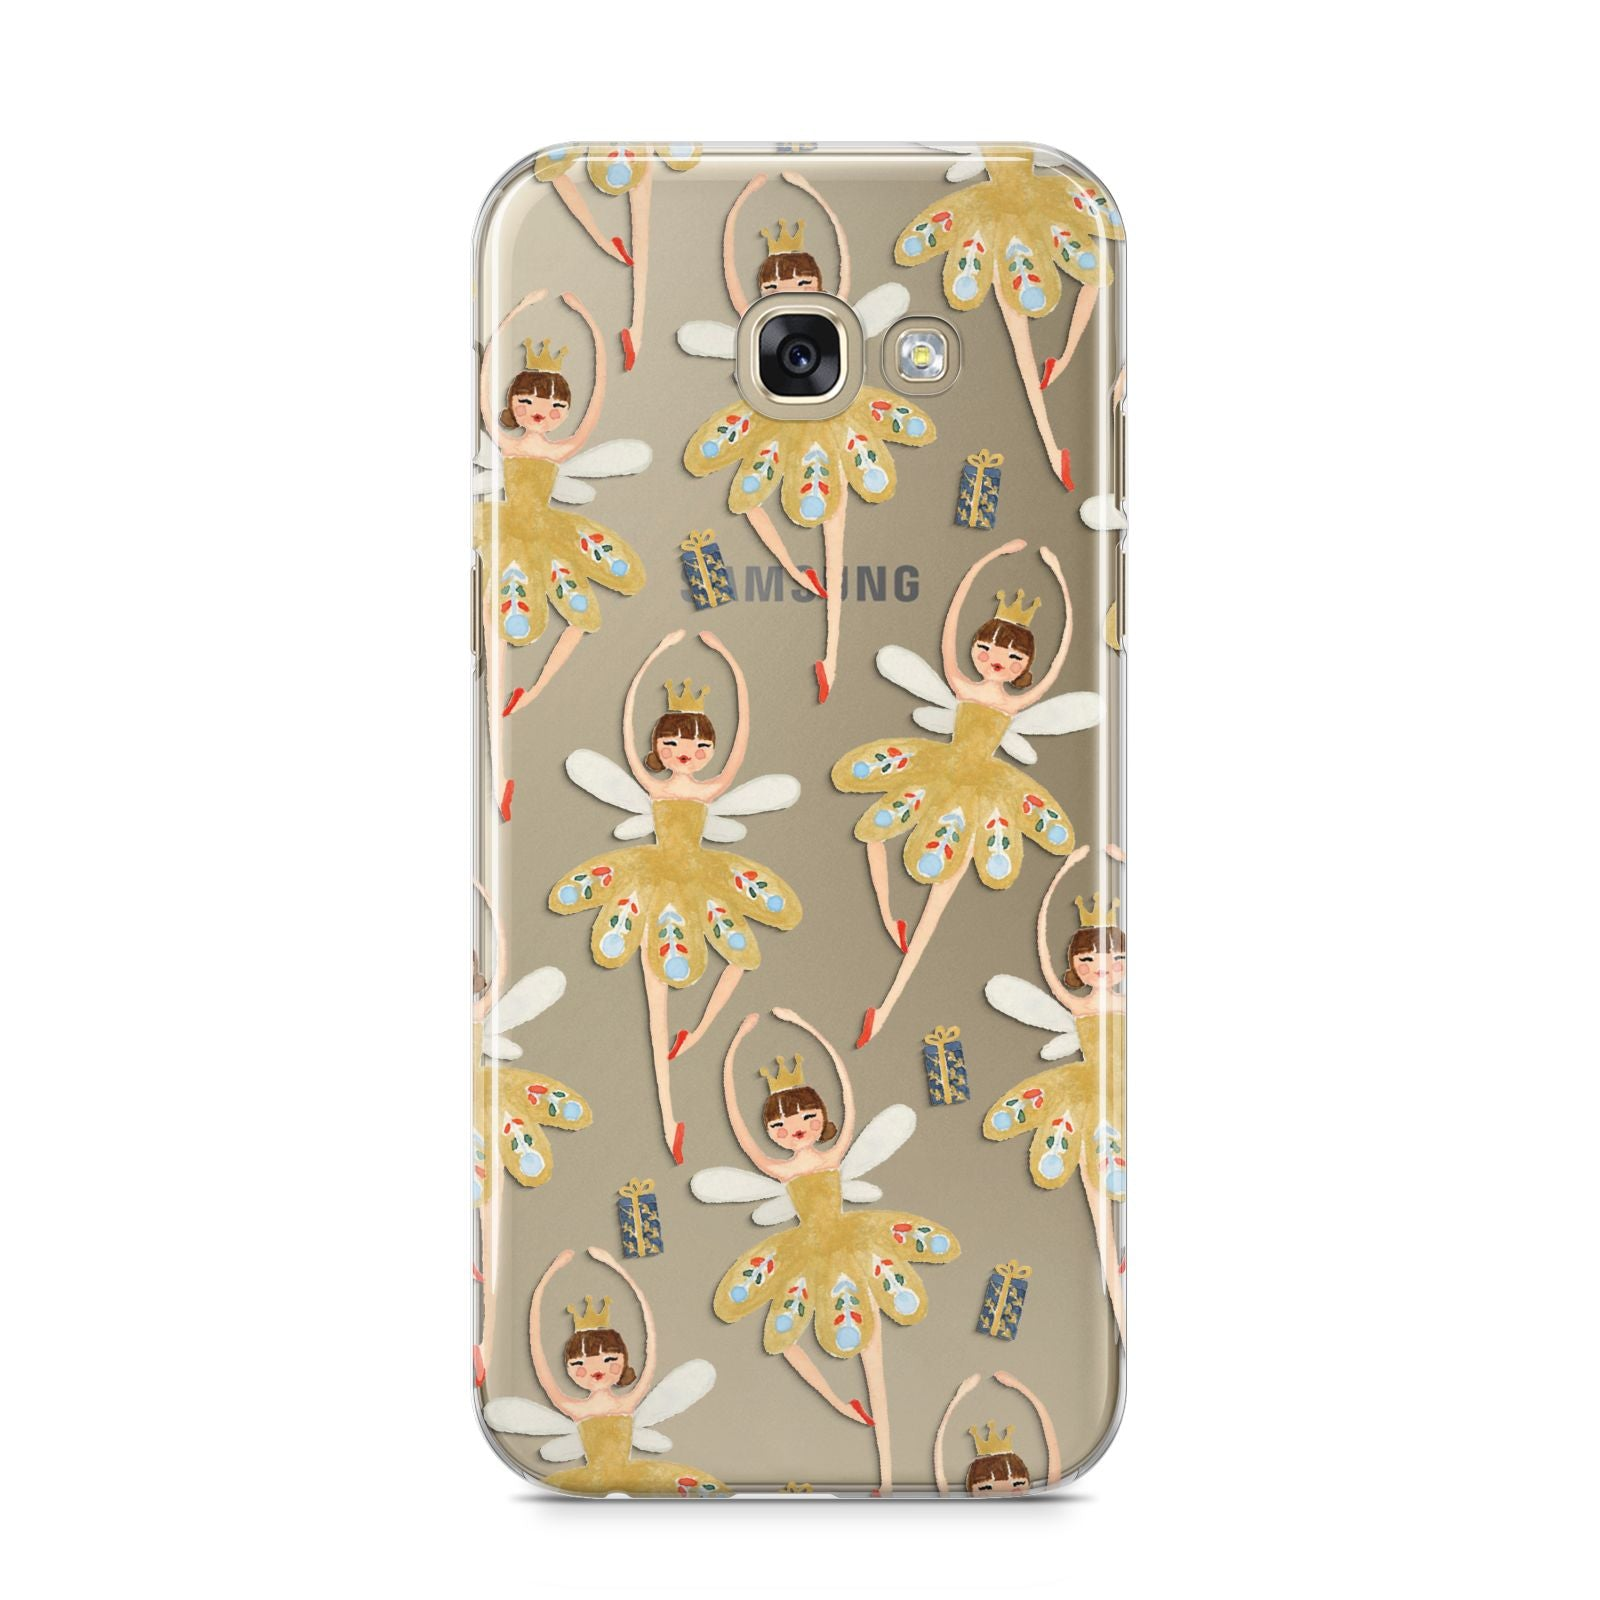 Dancing ballerina princess Samsung Galaxy A5 2017 Case on gold phone